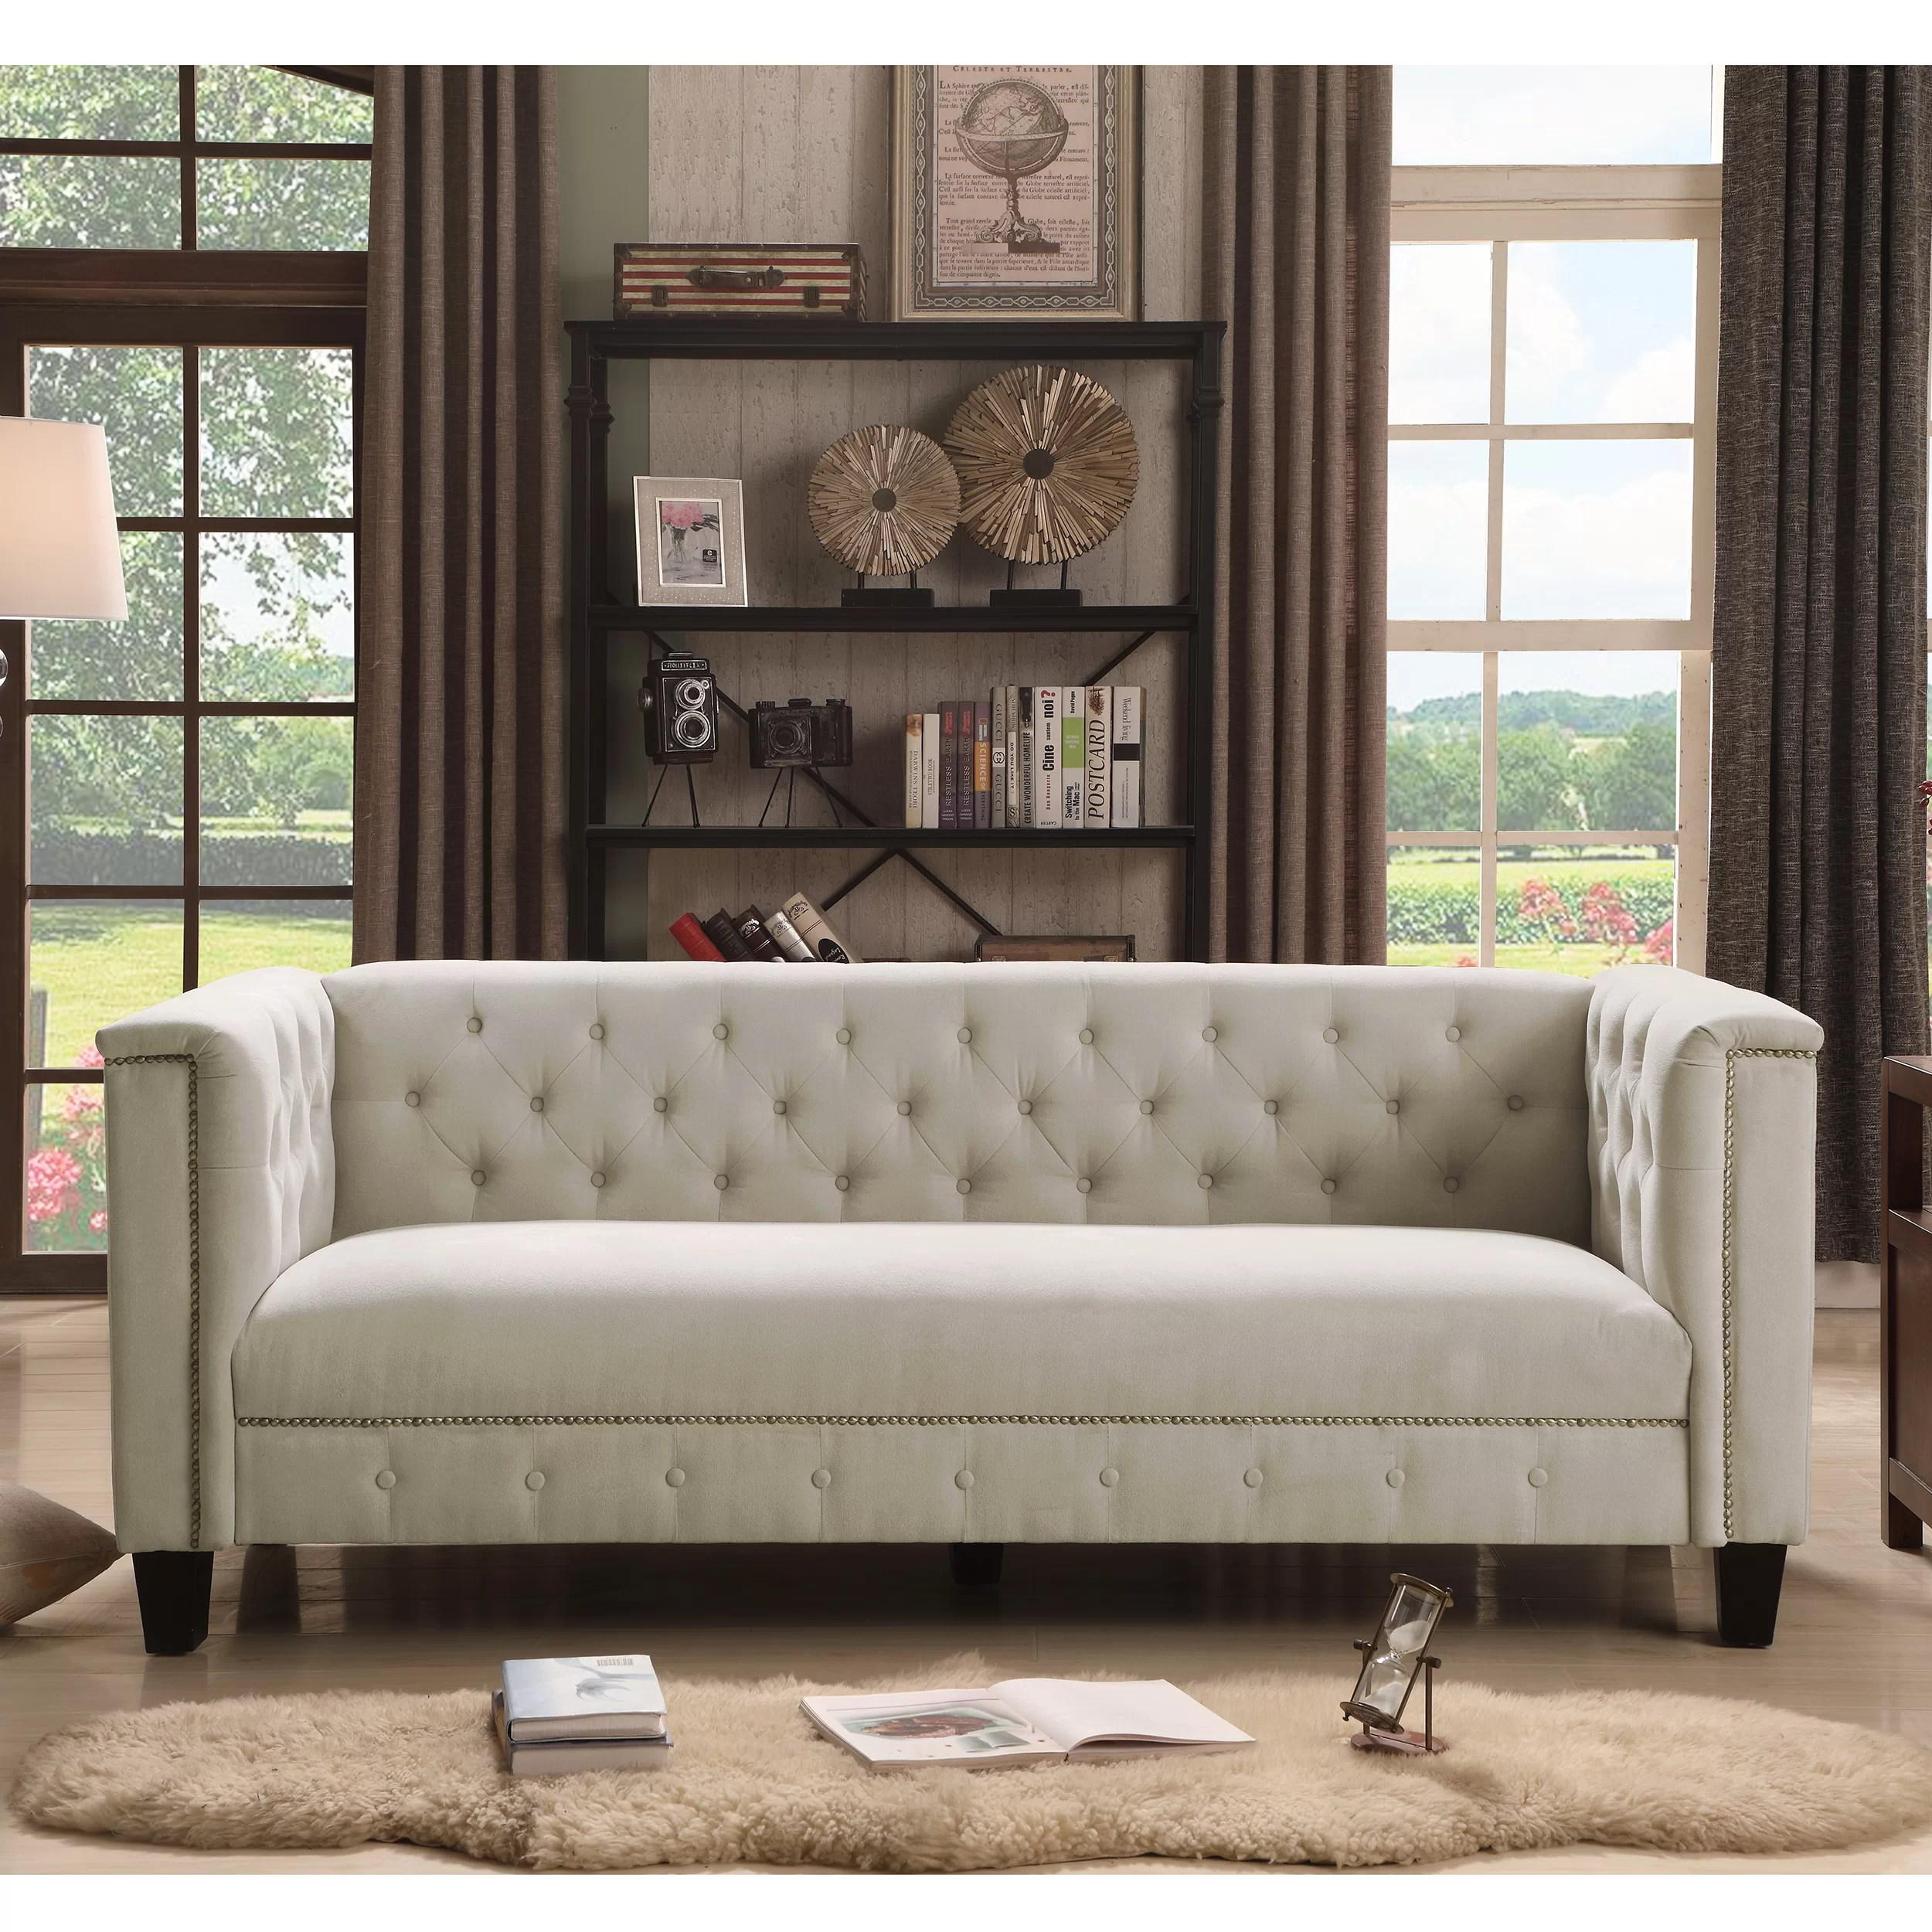 Sofa In Chesterfield Look Broughtonville Chesterfield Sofa